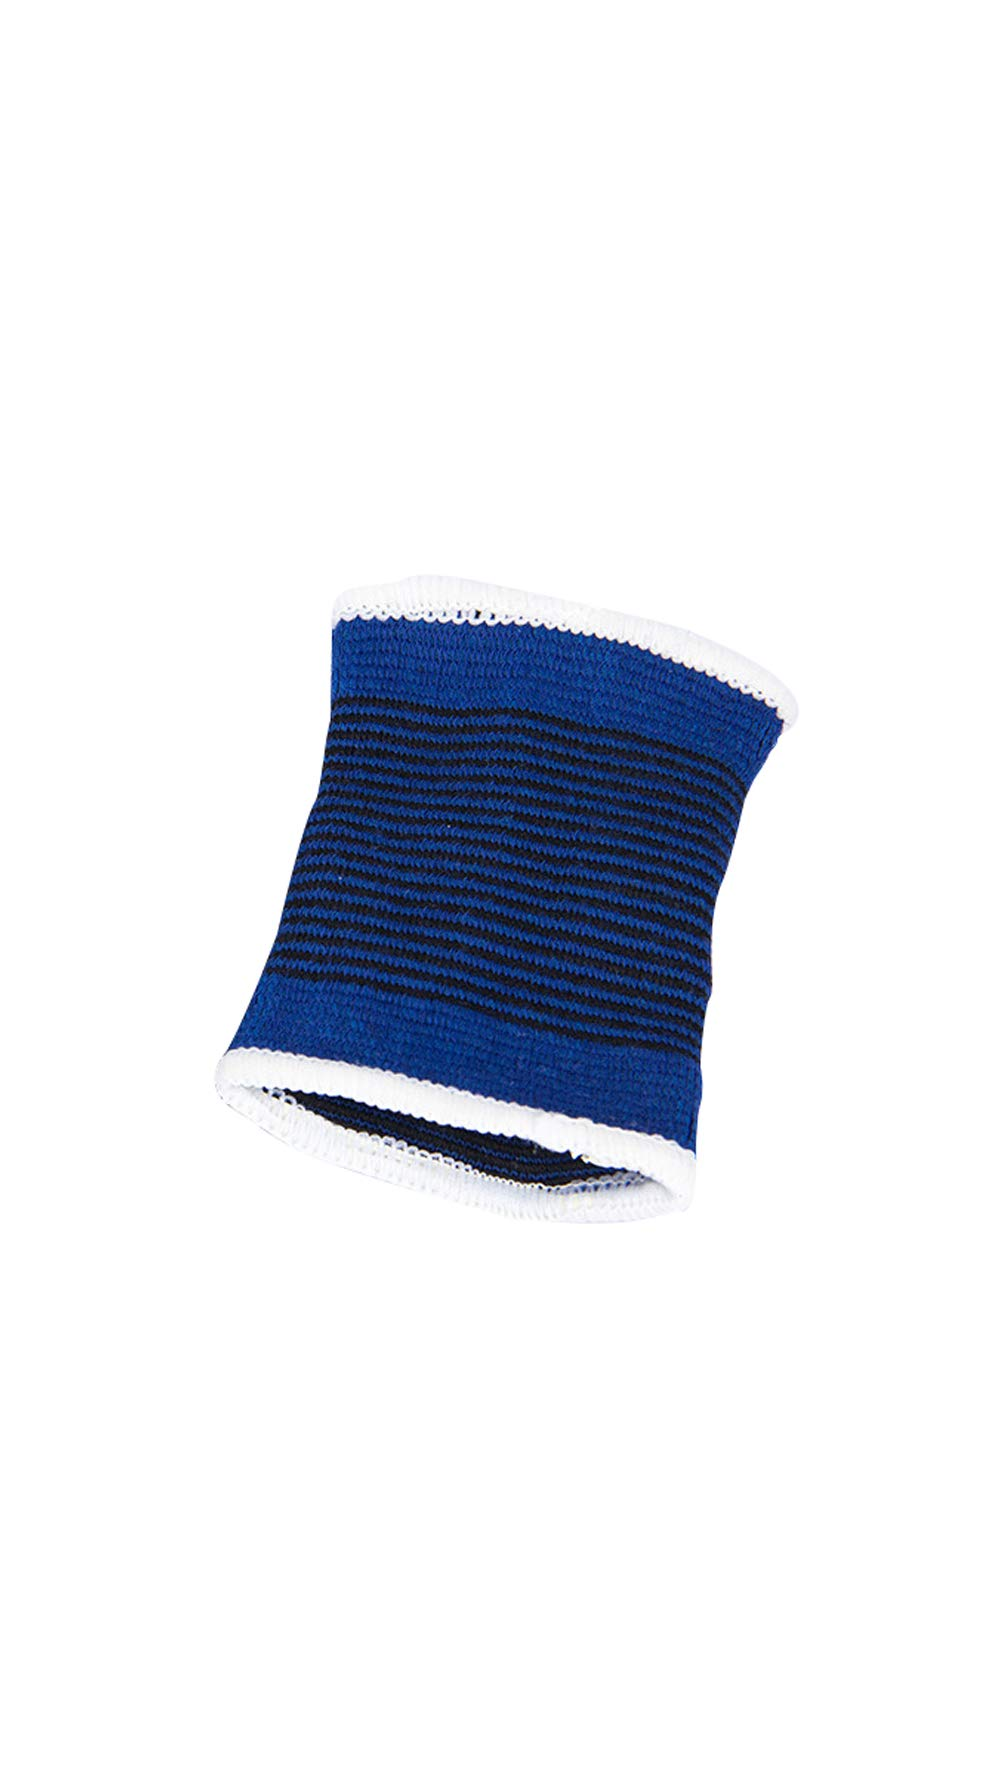 XinHeChengMai Polyester Cotton Knitted Wristguards Handguards Sports Fitness Protective Guards Highly Elastic Comfortable Breathable Bracers